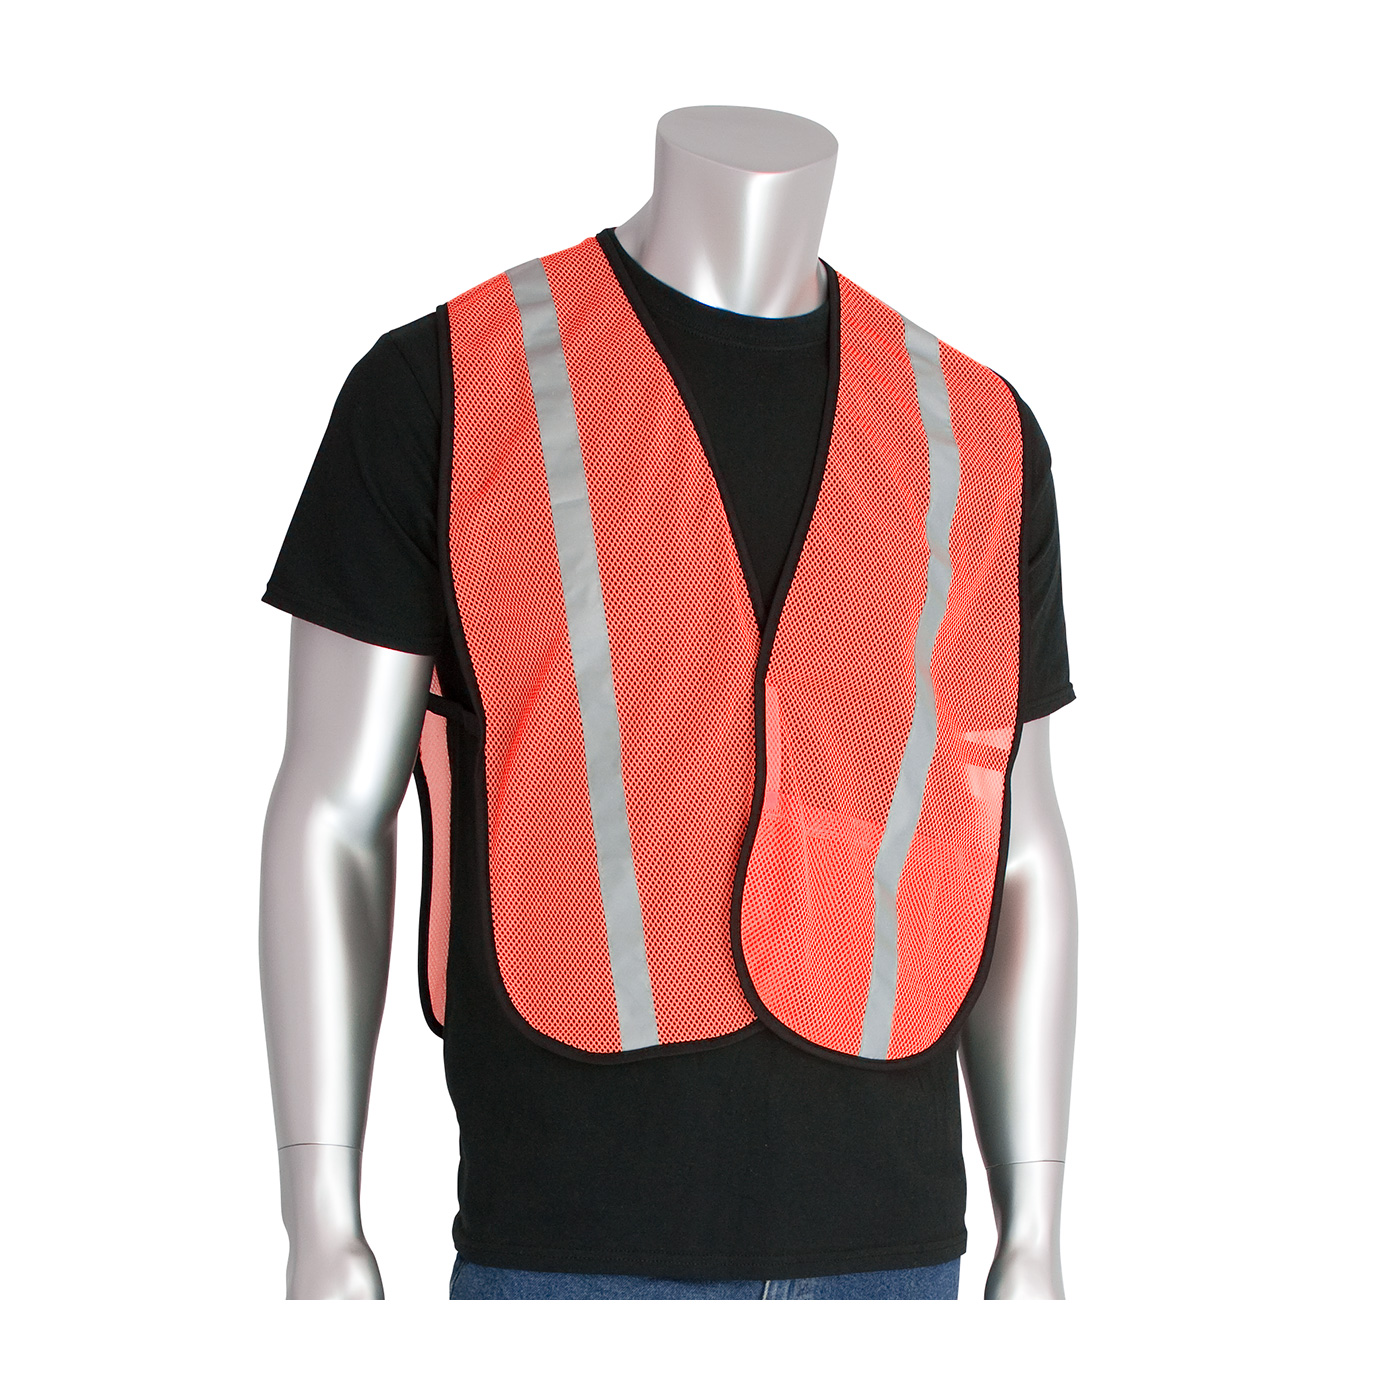 #300-EVOR-E PIP® Non-ANSI Hi-Viz Orange One Pocket Mesh Safety Vests with 1` Reflective Tape